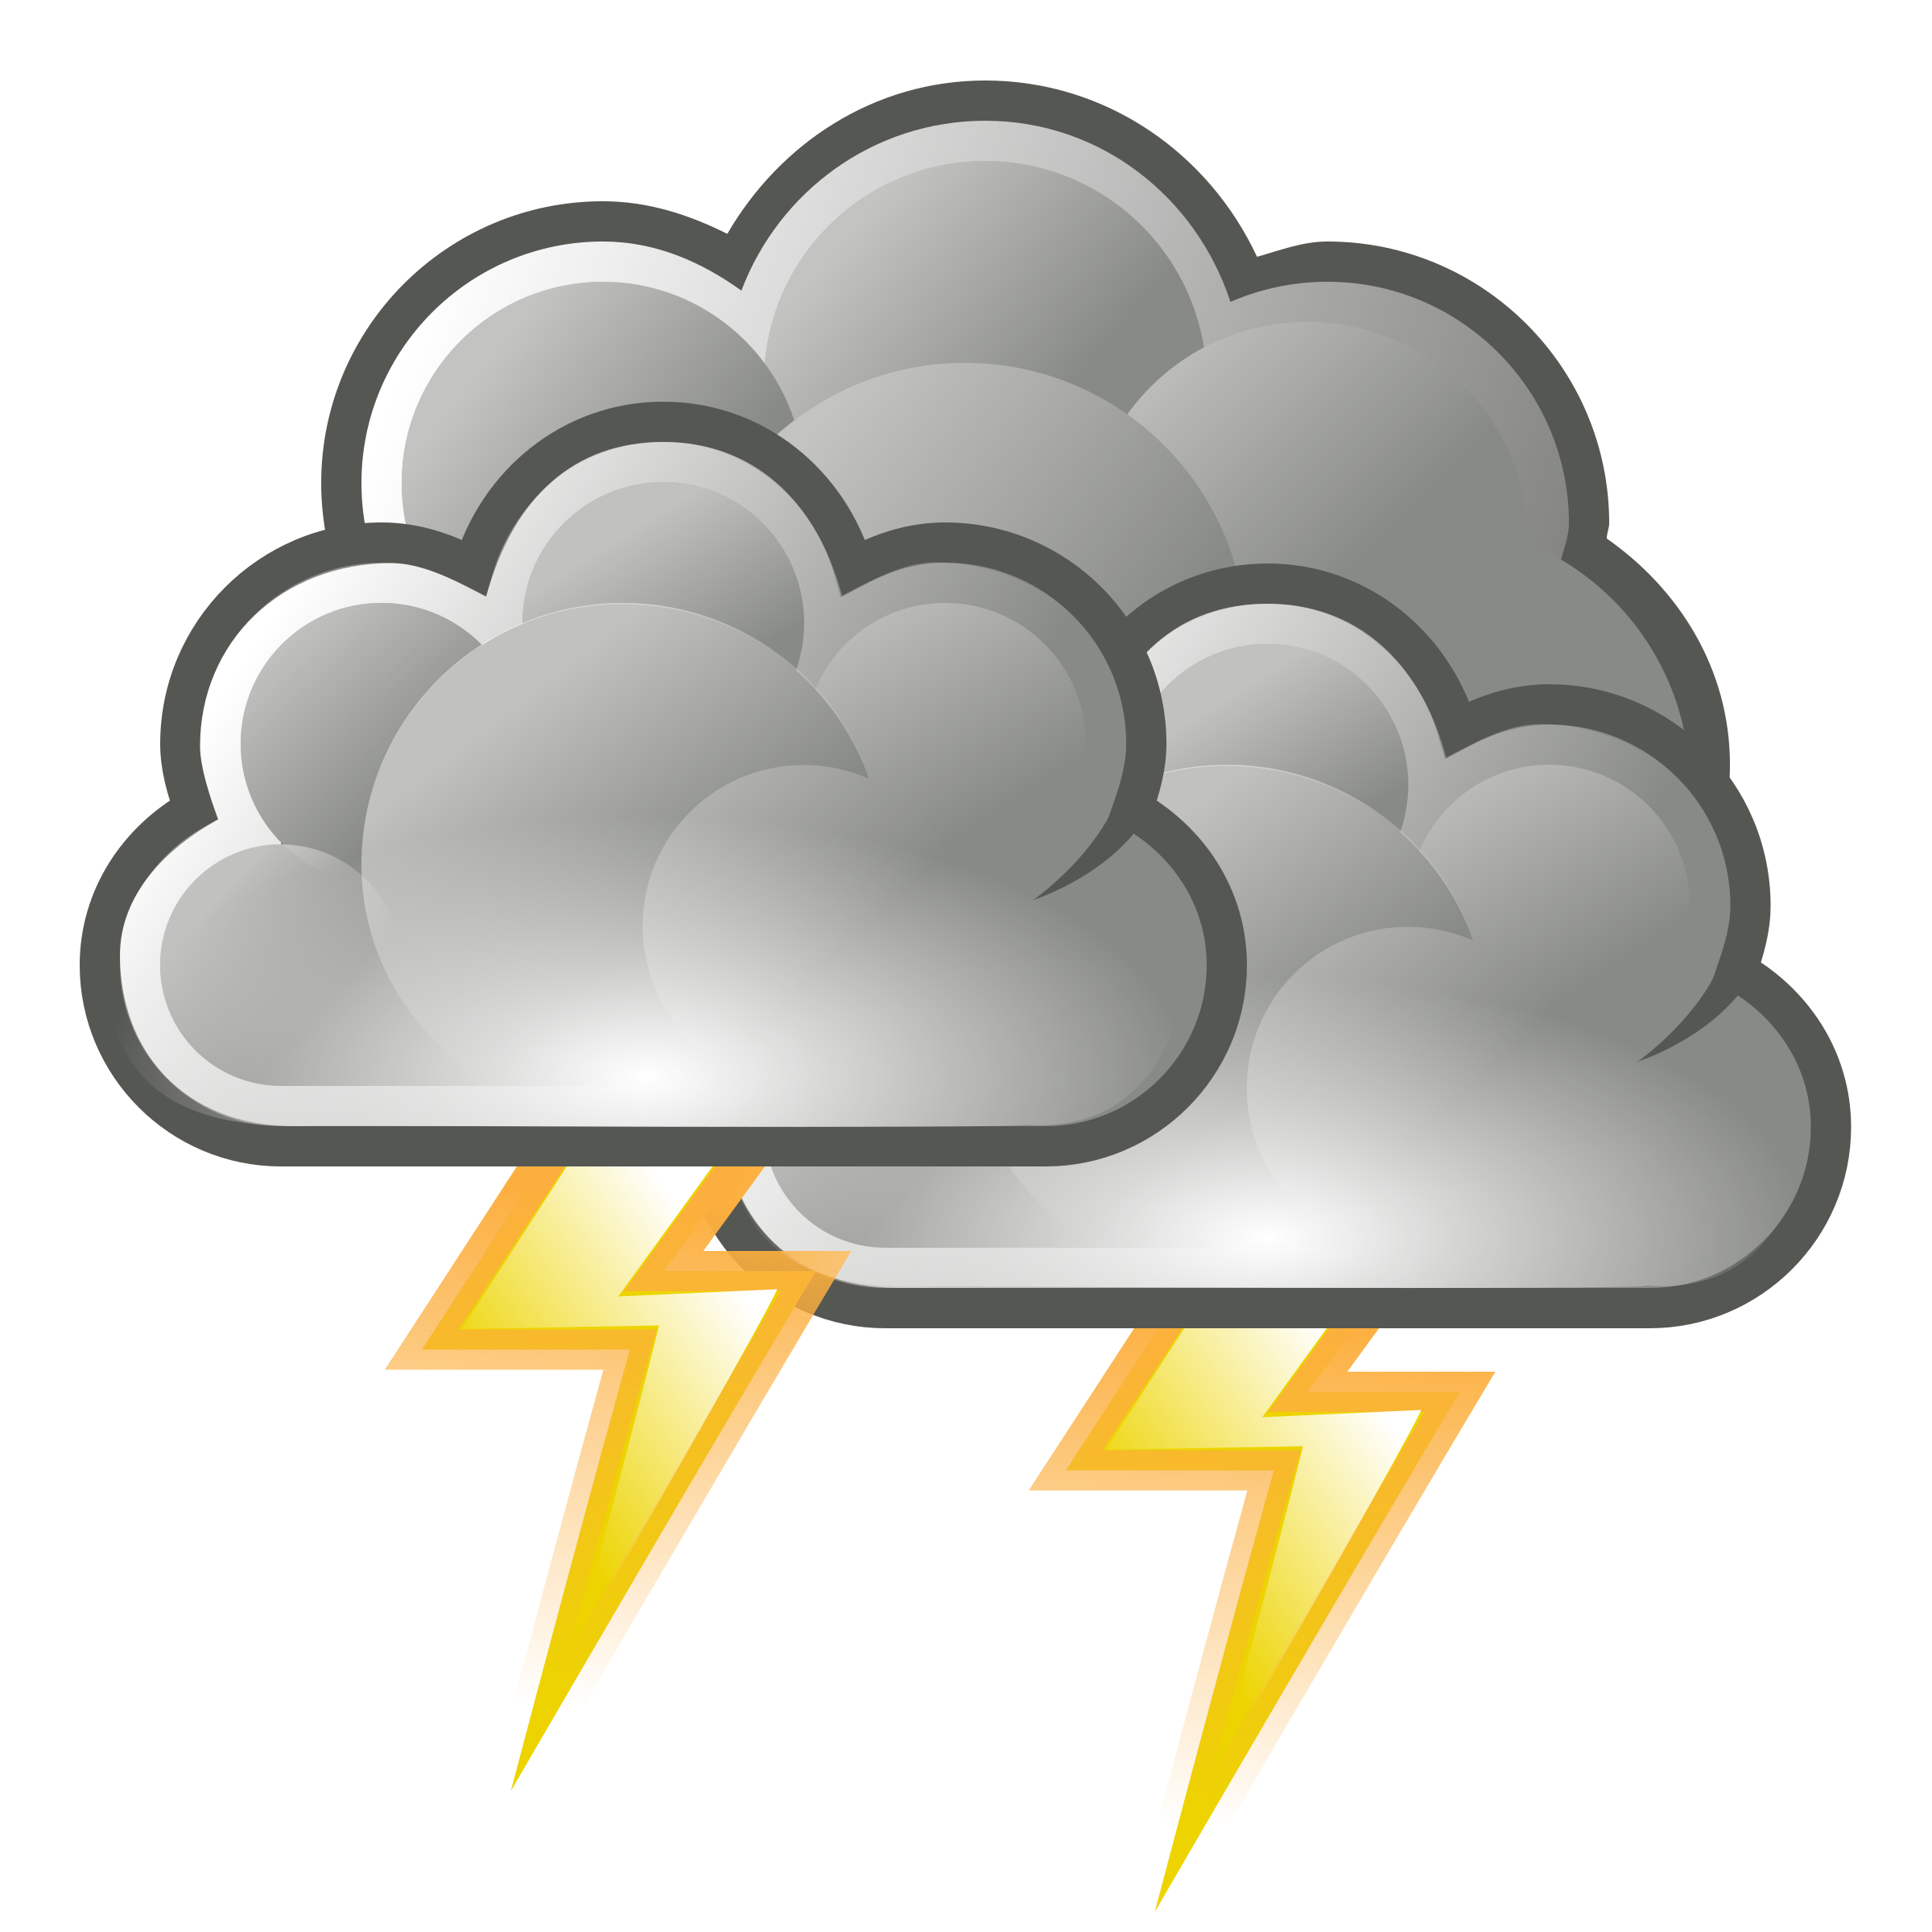 Storm clipart tropical storm